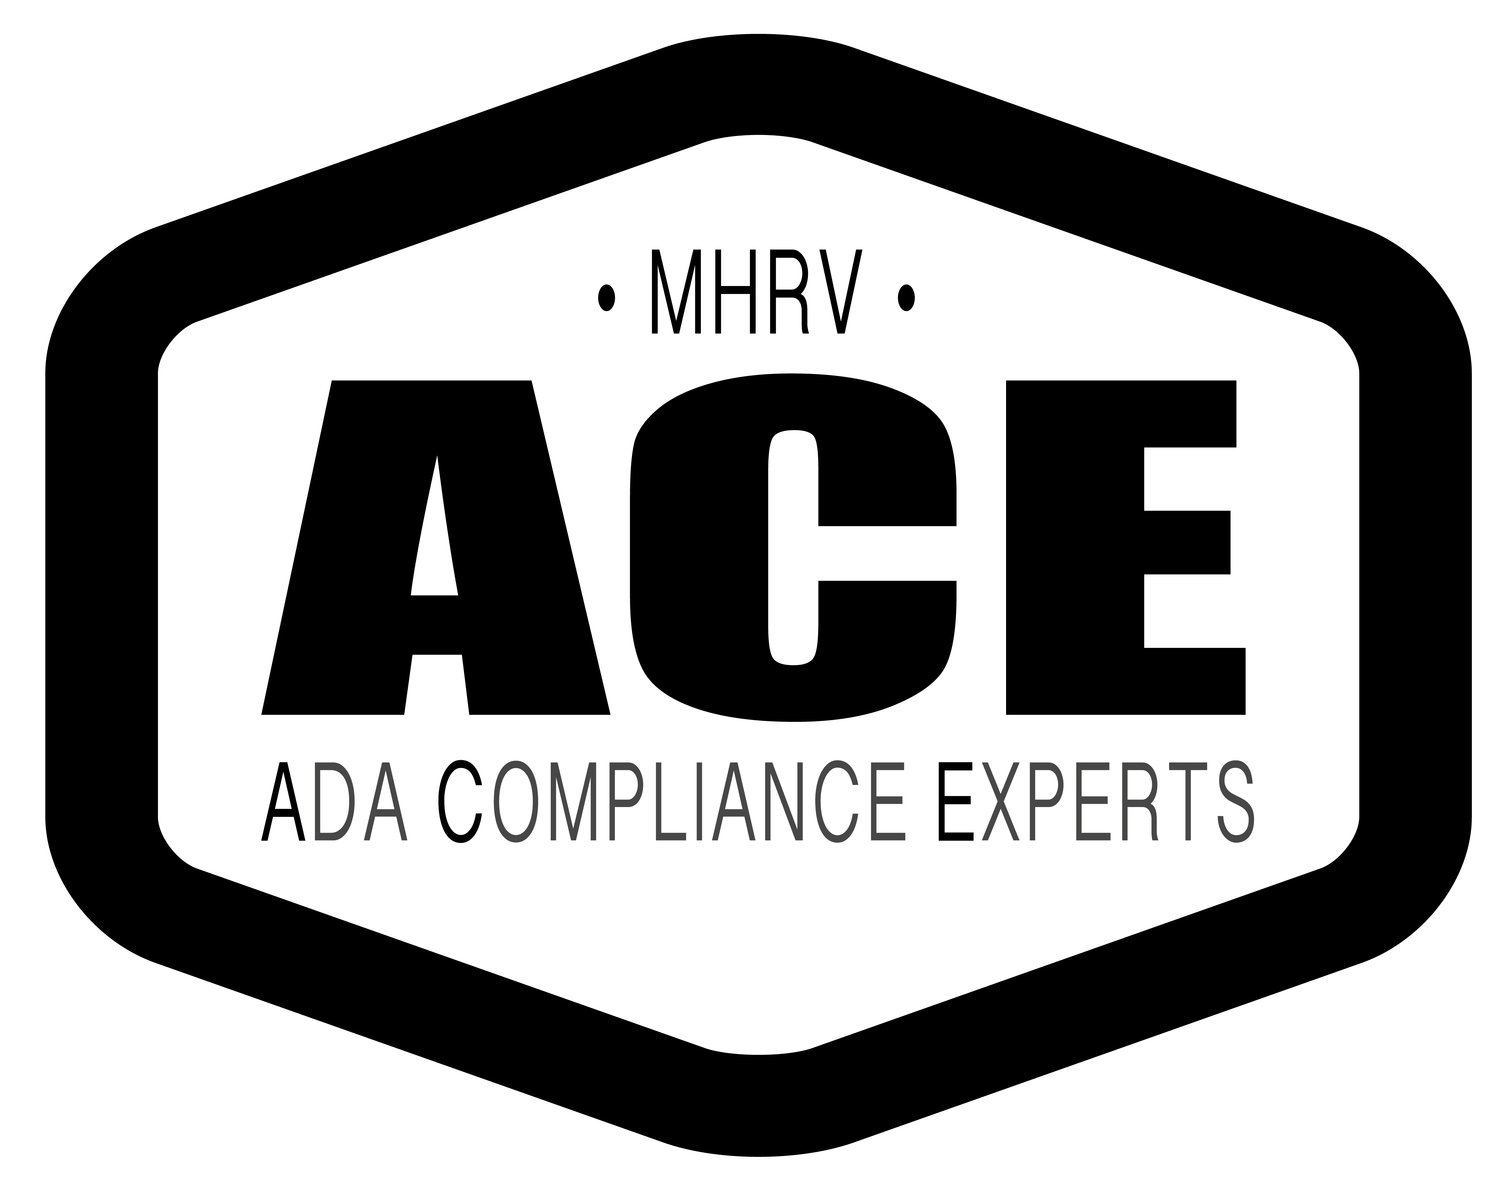 MHRV | ADA COMPLIANCE EXPERTS